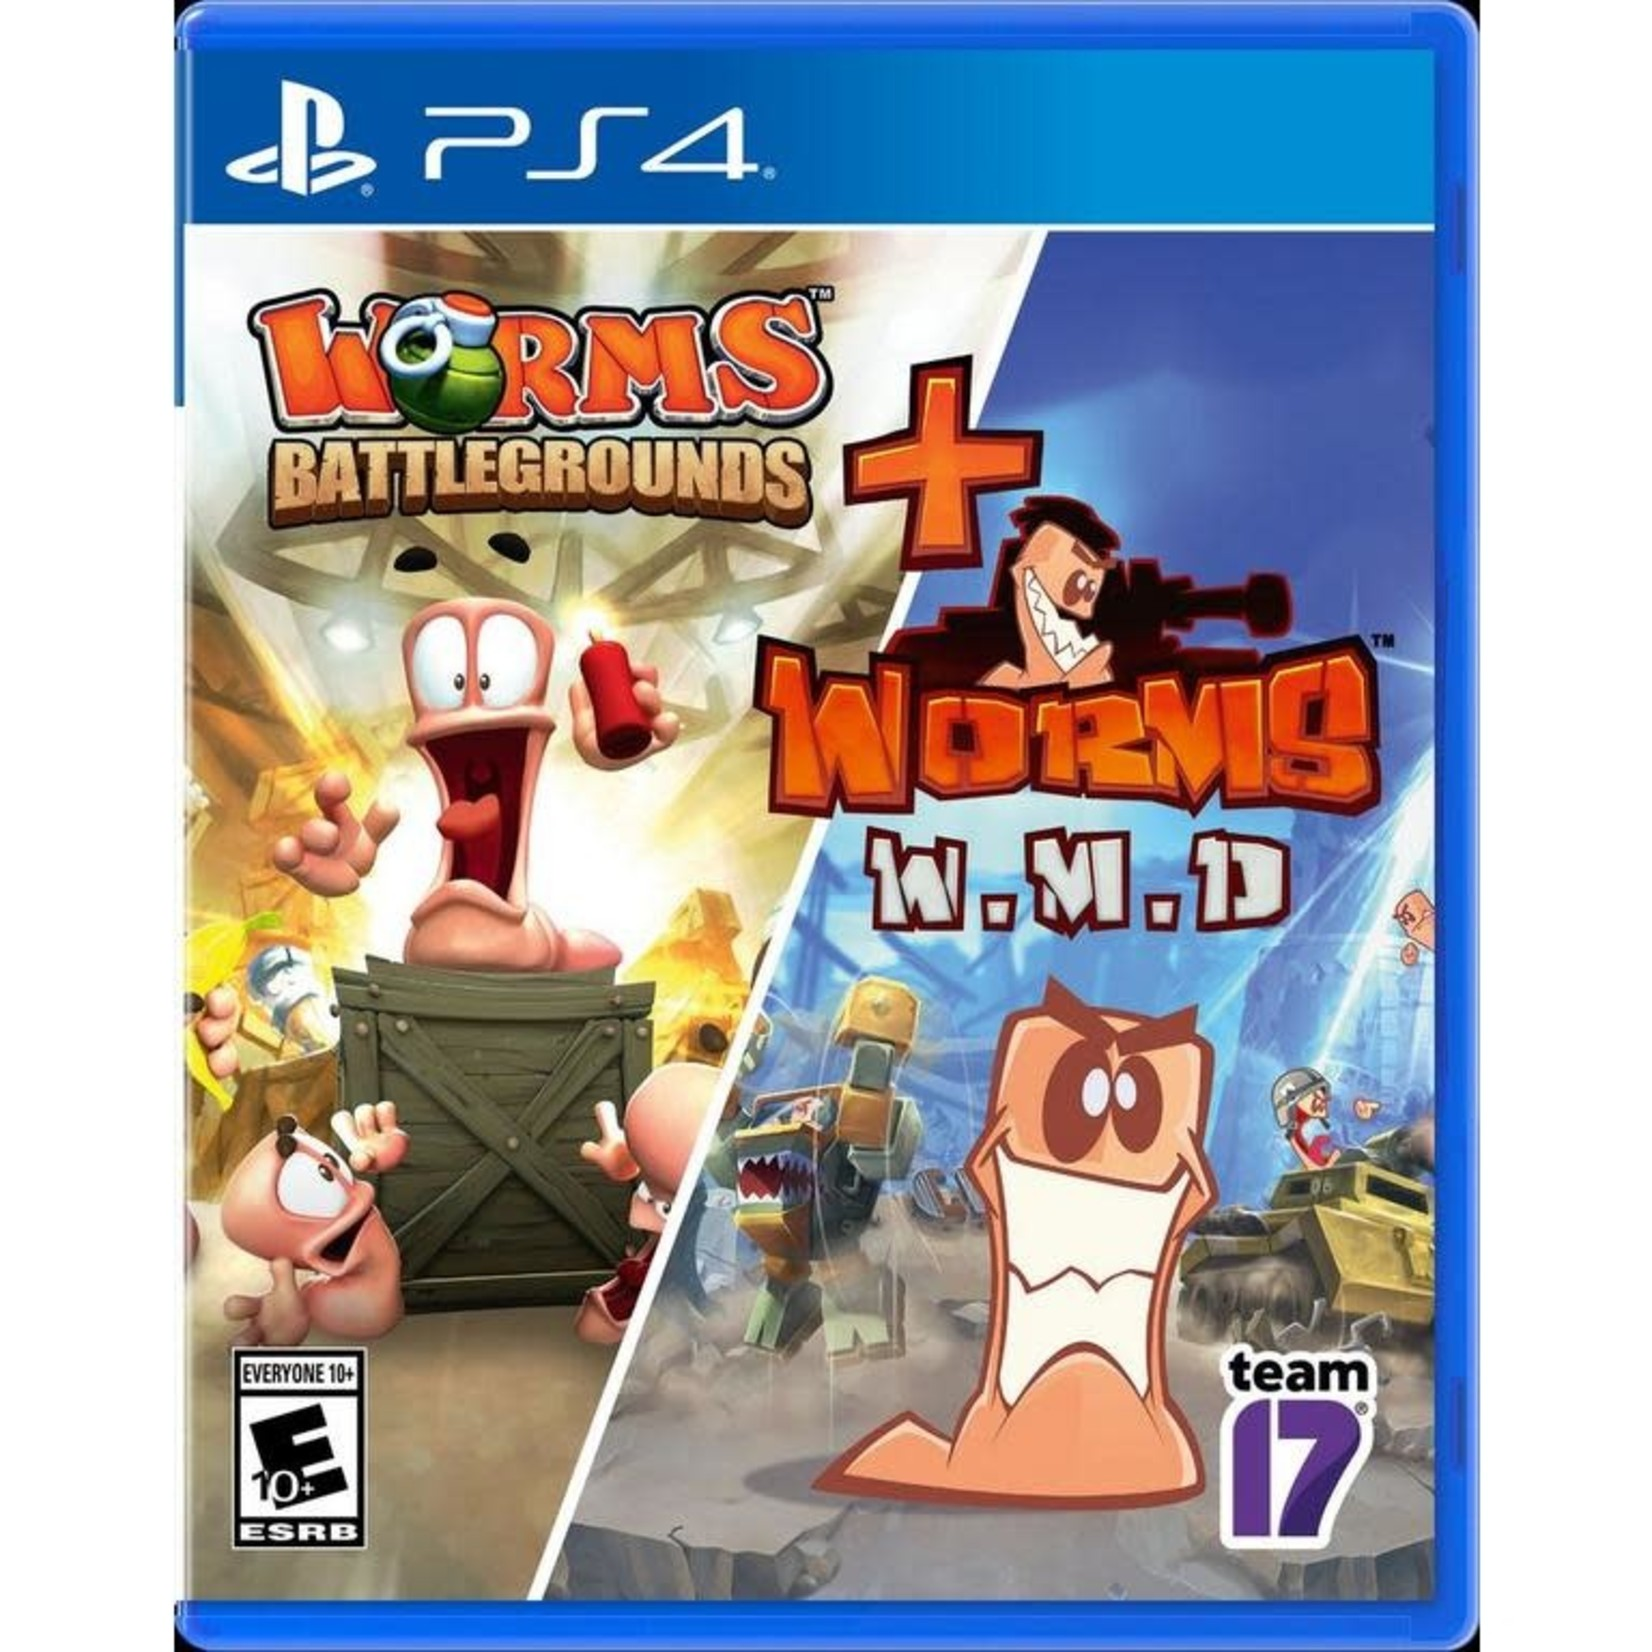 PS4-Worms Battlegrounds + Worms W.M.D